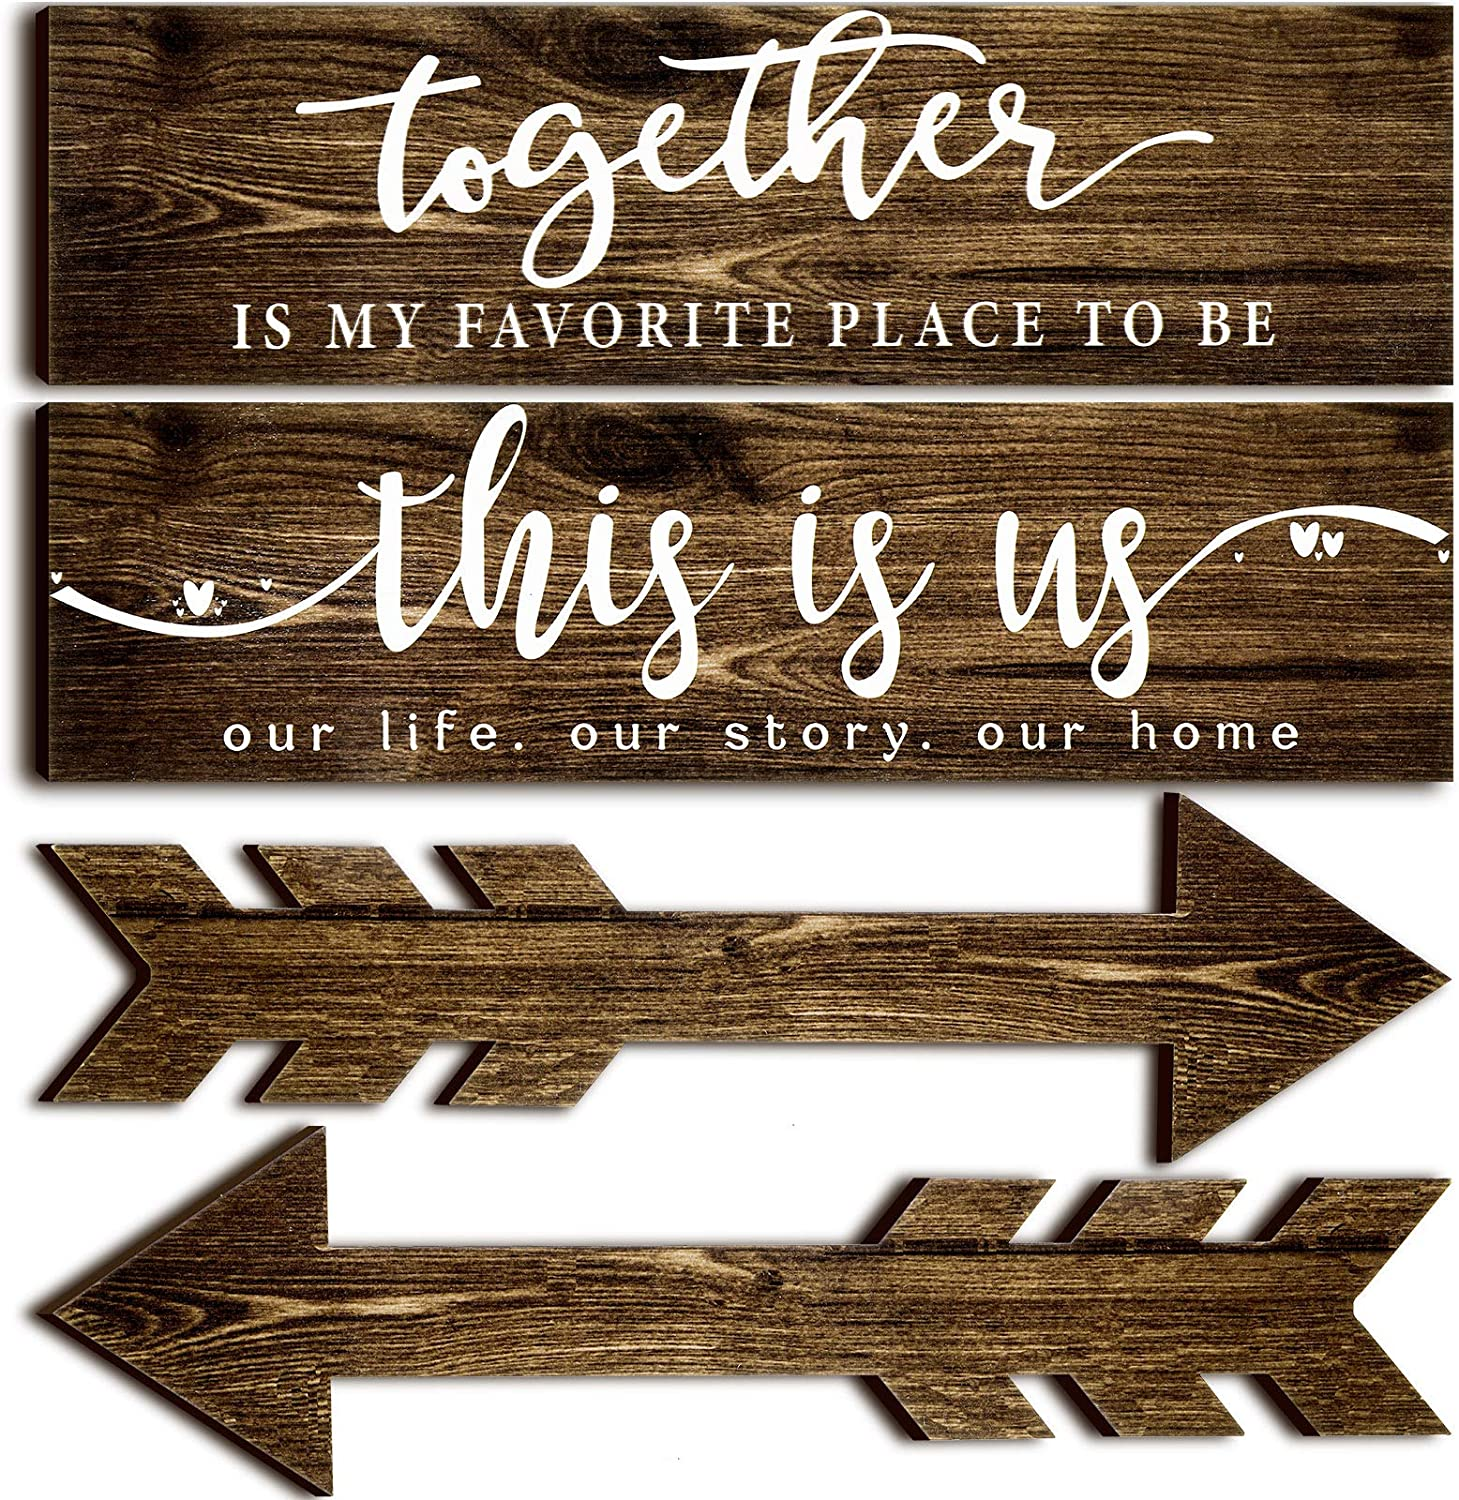 4 Pieces This is Us Our Life Our Story Rustic Wood Signs Together Wooden Wall Sign Wooden Arrow Hanging Signs Art Signs Farmhouse Entryway Signs for Bedroom Living Room, 15 x 4 x 0.2 Inch (Brown)